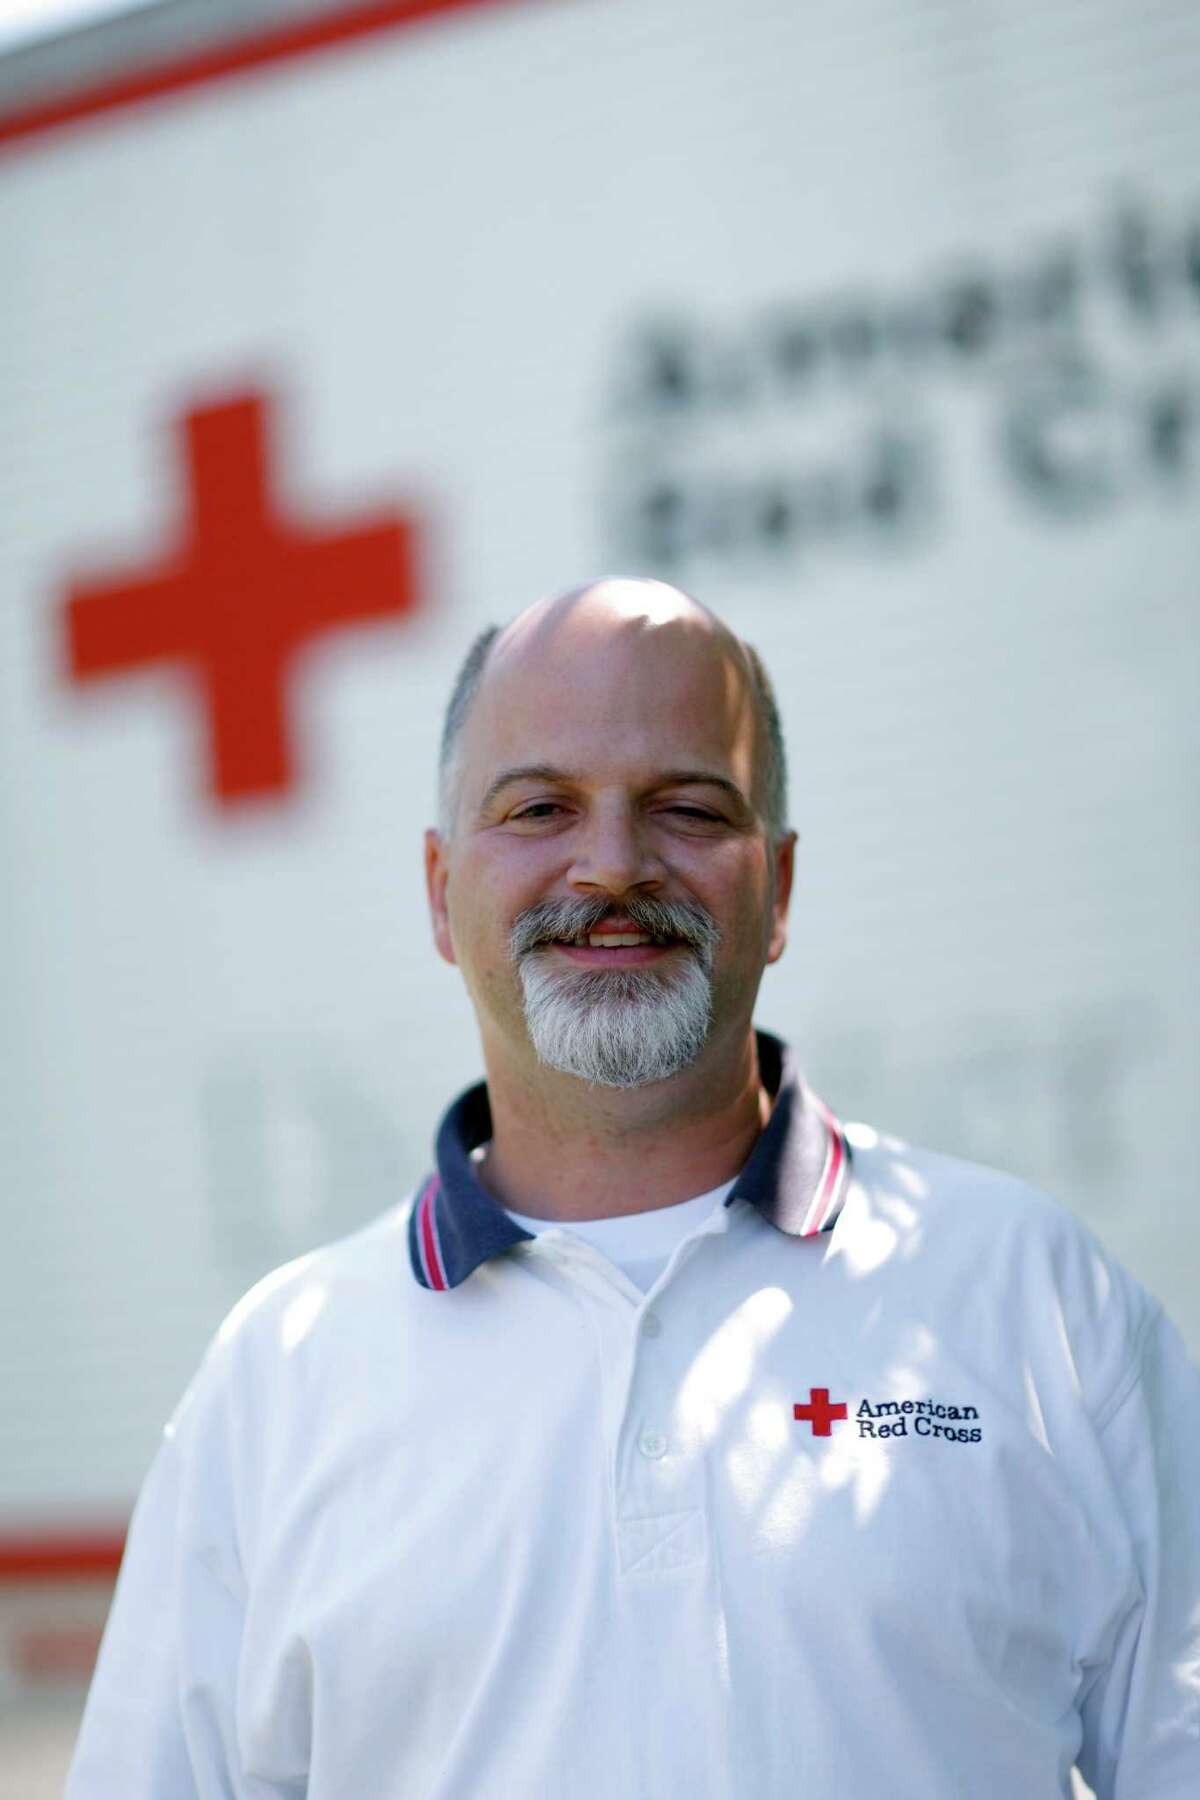 Local American Red Cross Northeastern New York (ARCNENY) Director of Volunteer & Community Services Skip Zimmerman, poses for a photo outside of the ARCNENY office, in Albany, N.Y., Thursday, June 28, 2012. Two volunteers, Skip Zimmerman and Kathryn Smith, are being sent to Loveland, CO to help with the disaster relief efforts following the destruction caused by recent wildfires. (Dan Little / Special to the Times Union)